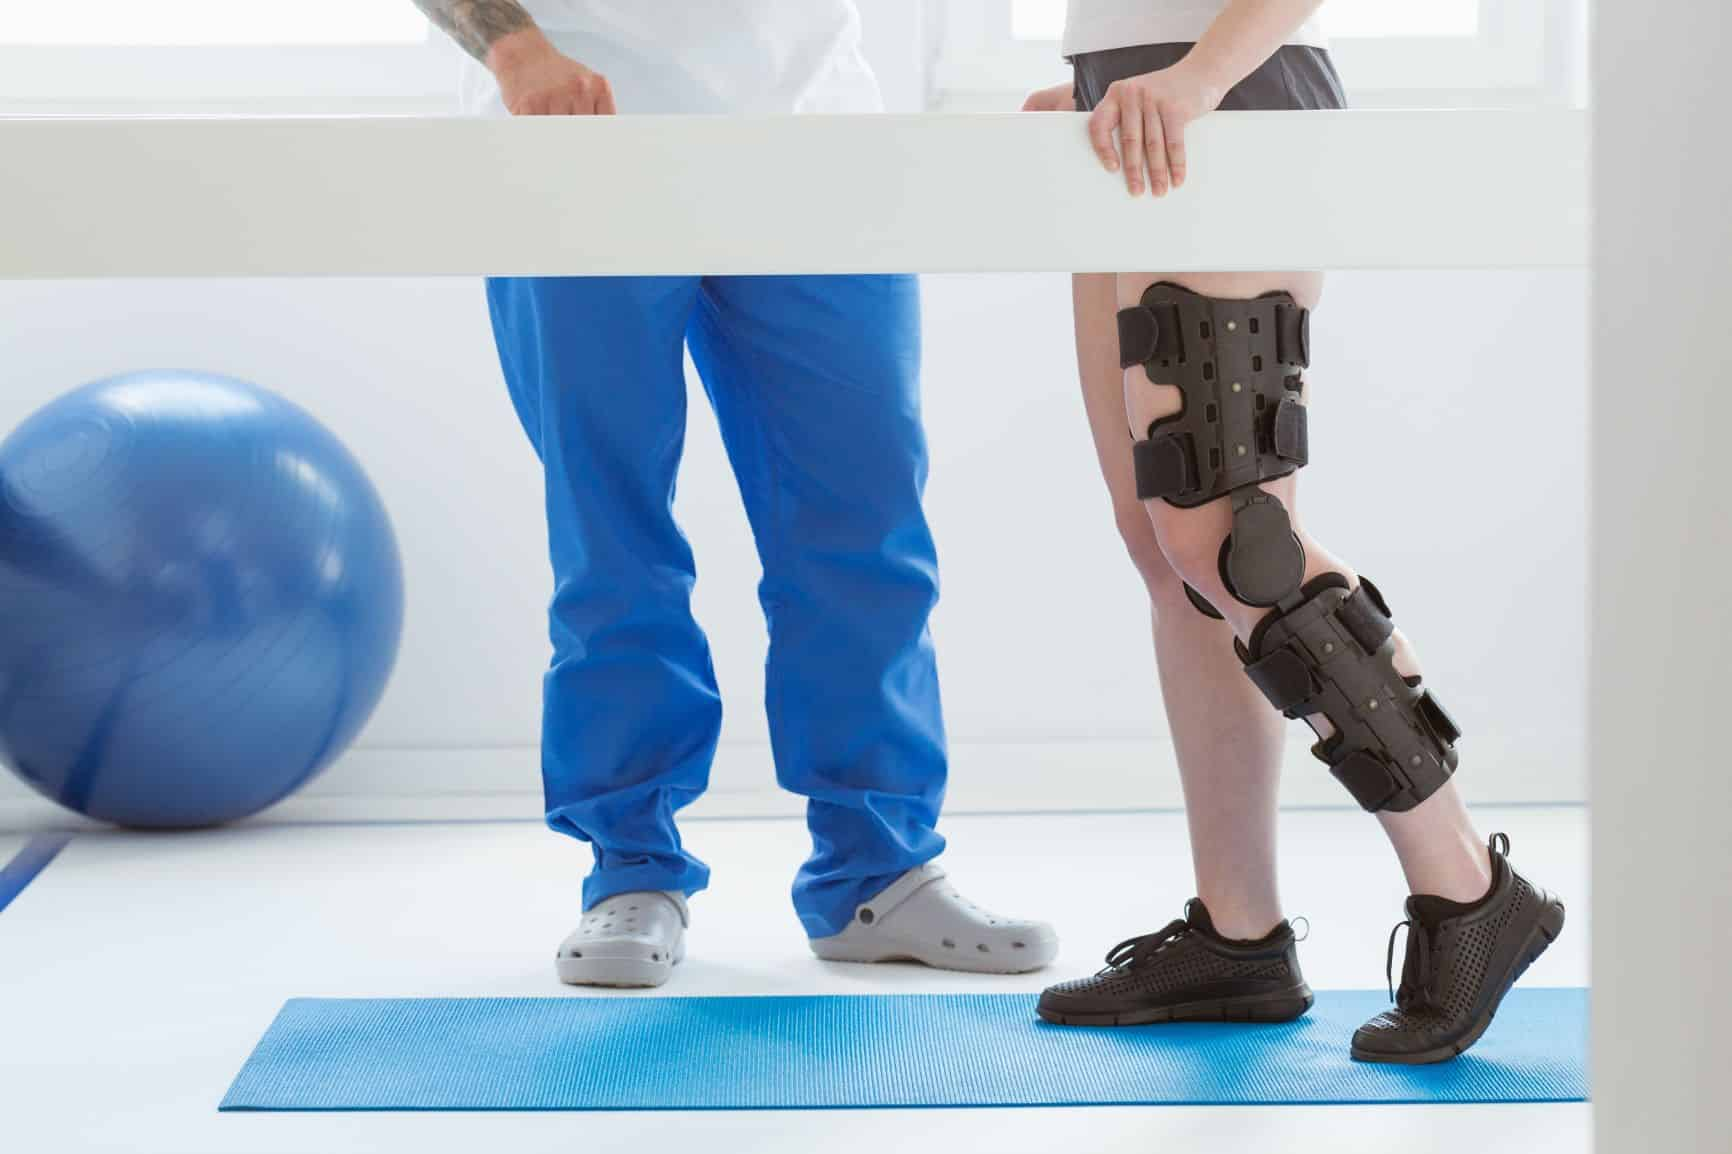 Trends in Orthopedics for 2021